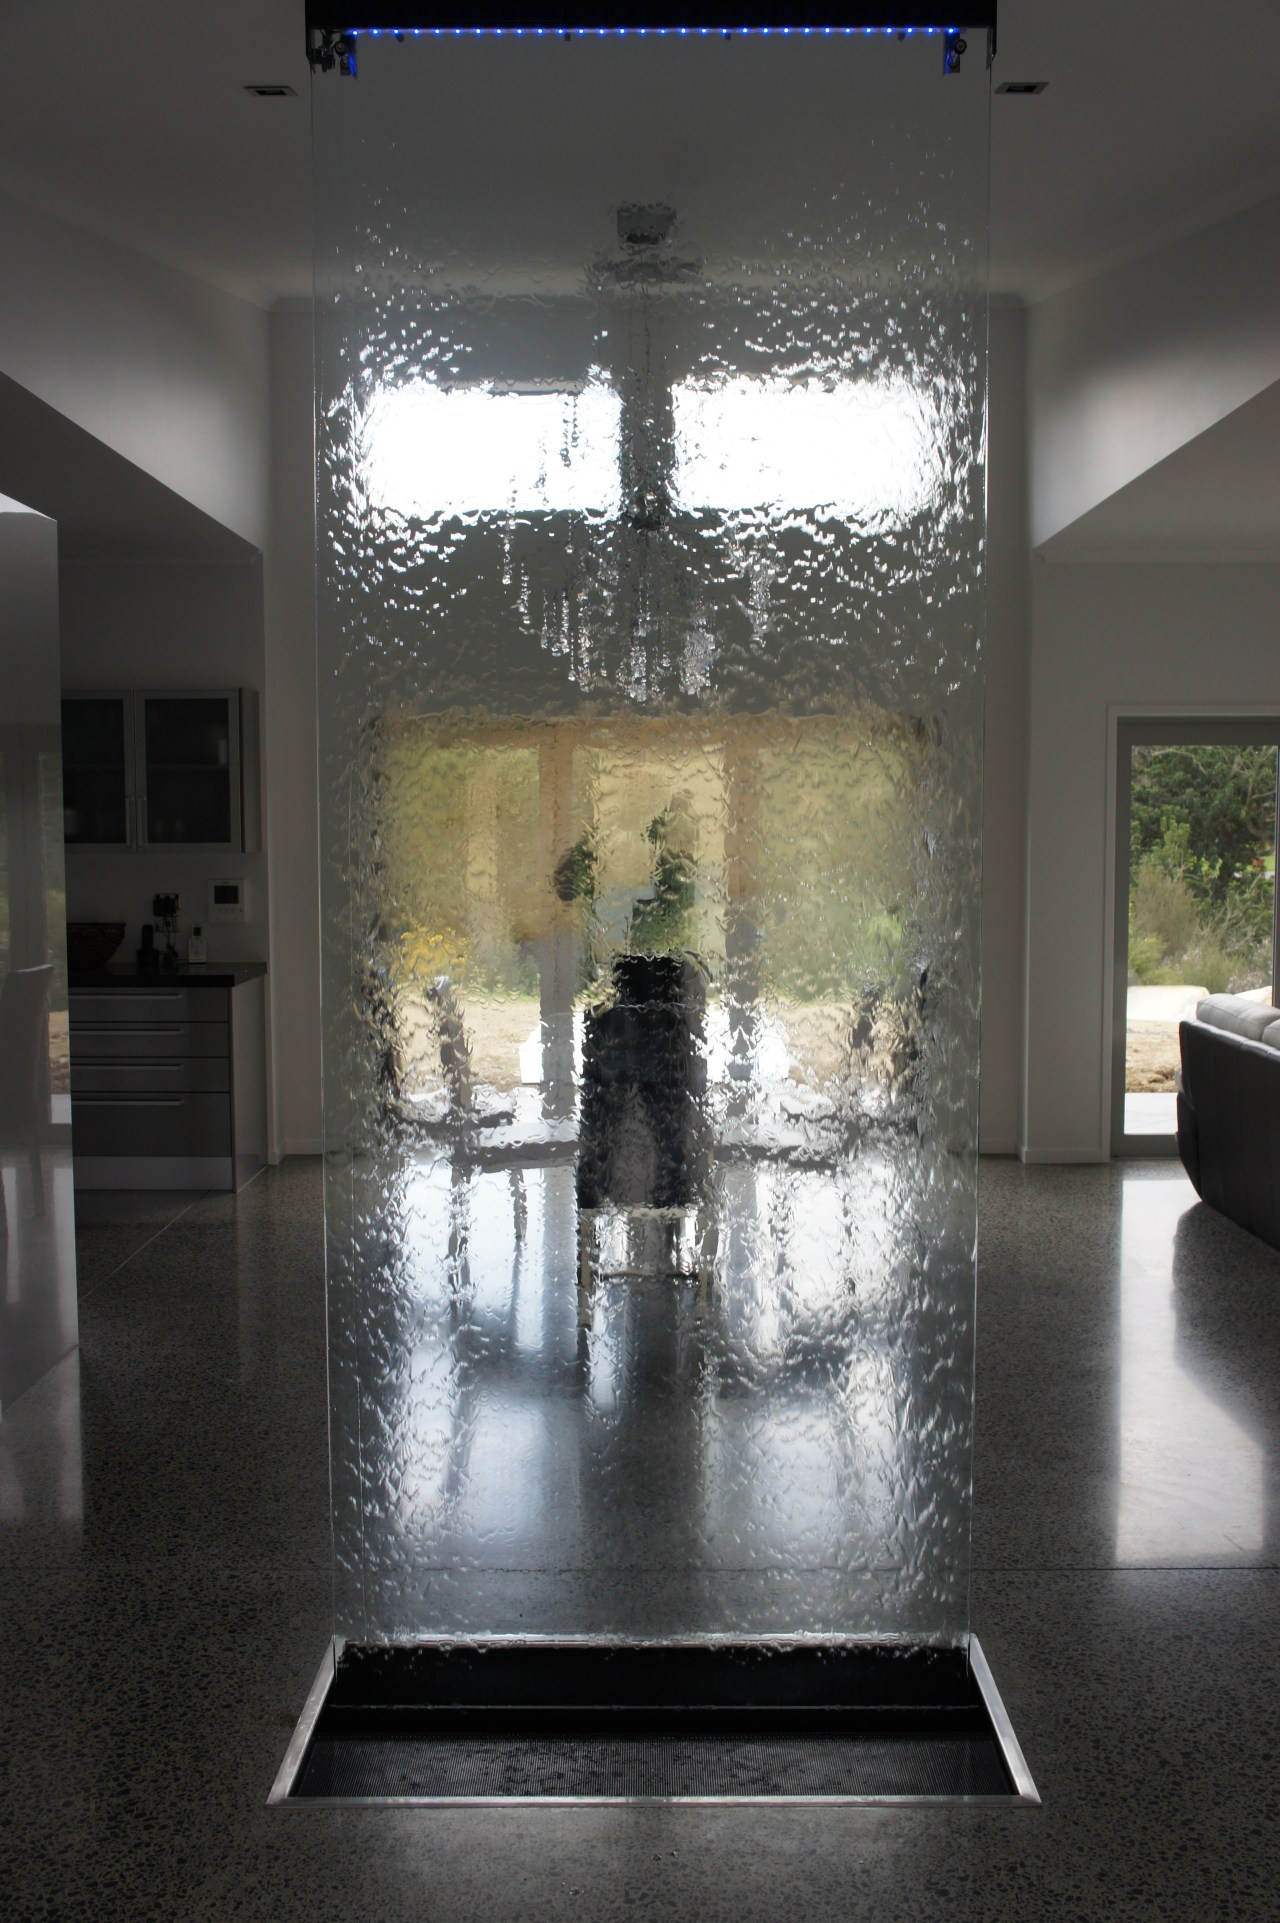 Waterworks indoor water feature.  A shimmering sheet architecture, ceiling, floor, flooring, glass, interior design, lobby, tourist attraction, wall, black